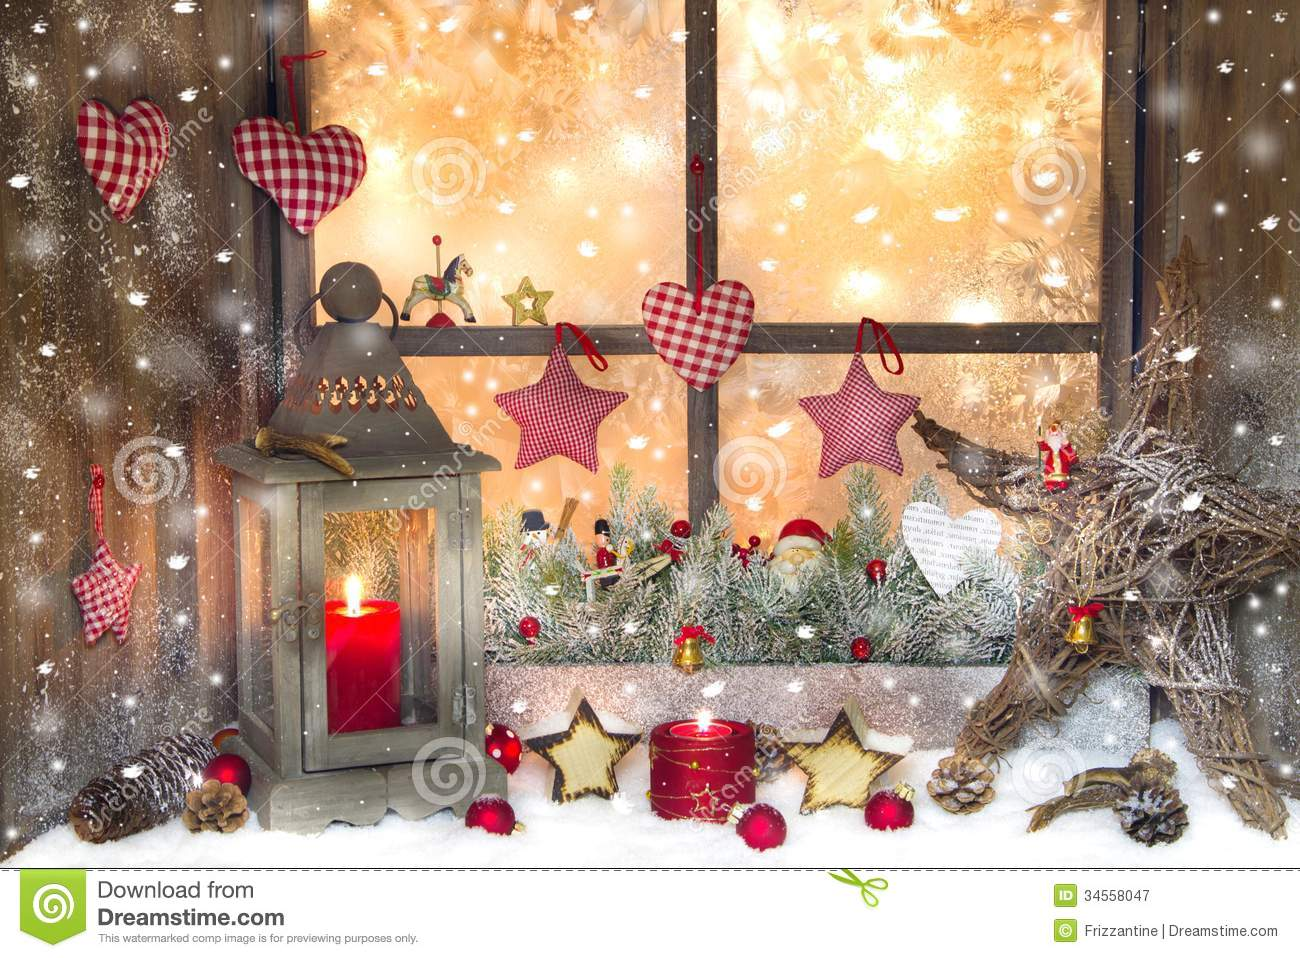 download red christmas decoration with lantern on window sill with wood stock image image of - How To Decorate A Lantern For Christmas